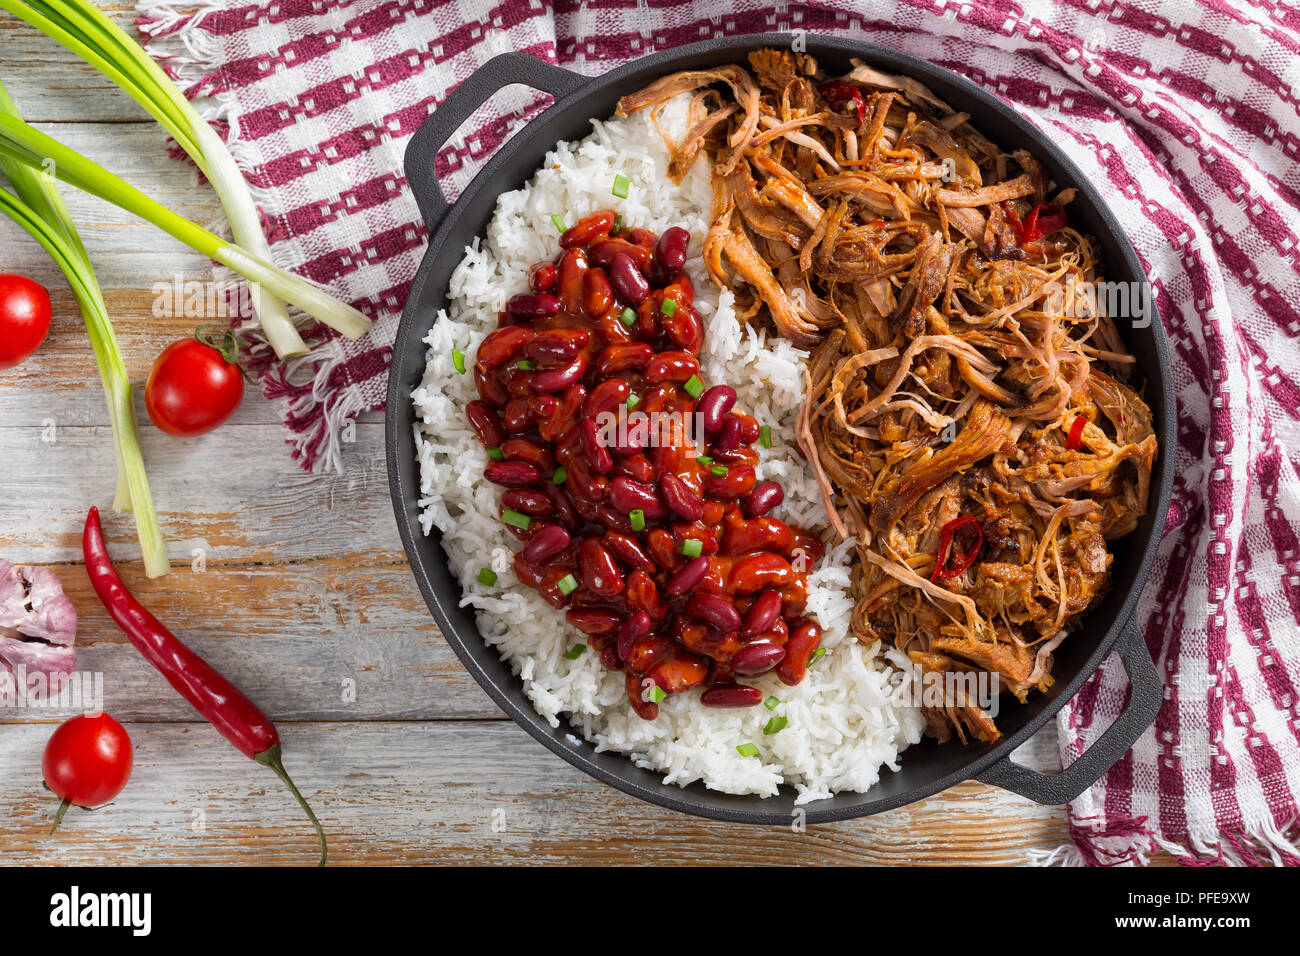 pulled slow-cooked pork shoulder with long-grain basmati rice and red bean sprinkled with green onion in stewpot with kitchen towel, on wooden table w - Stock Image